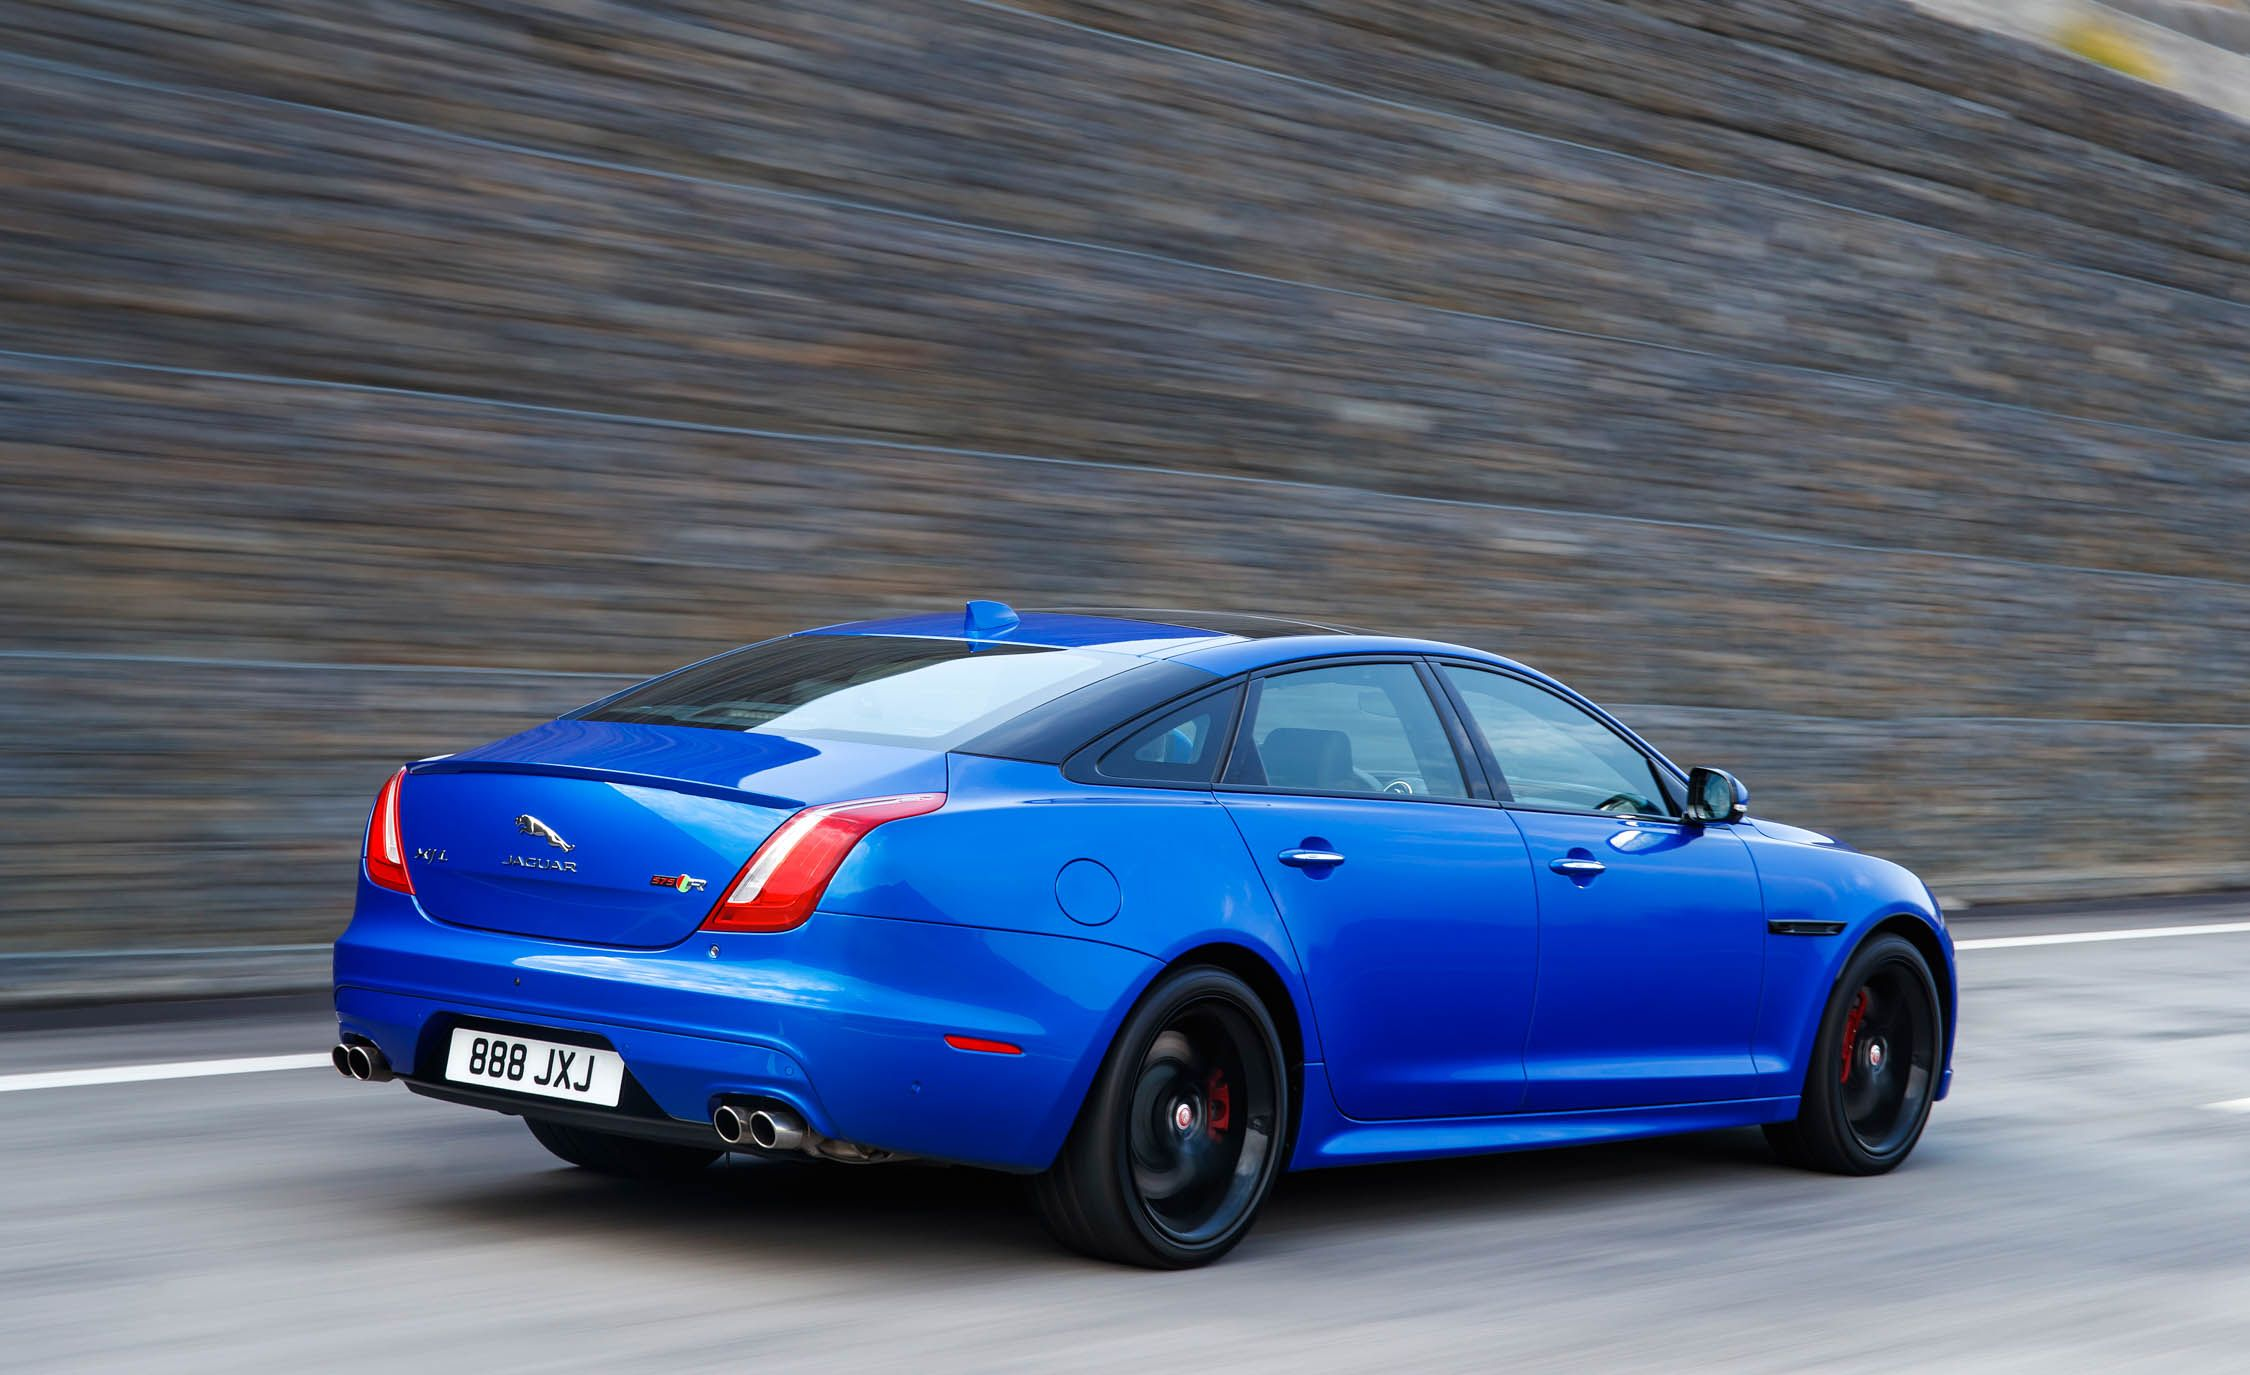 trade classifieds xjr jaguar sale buy private used forums forum fs southwest for